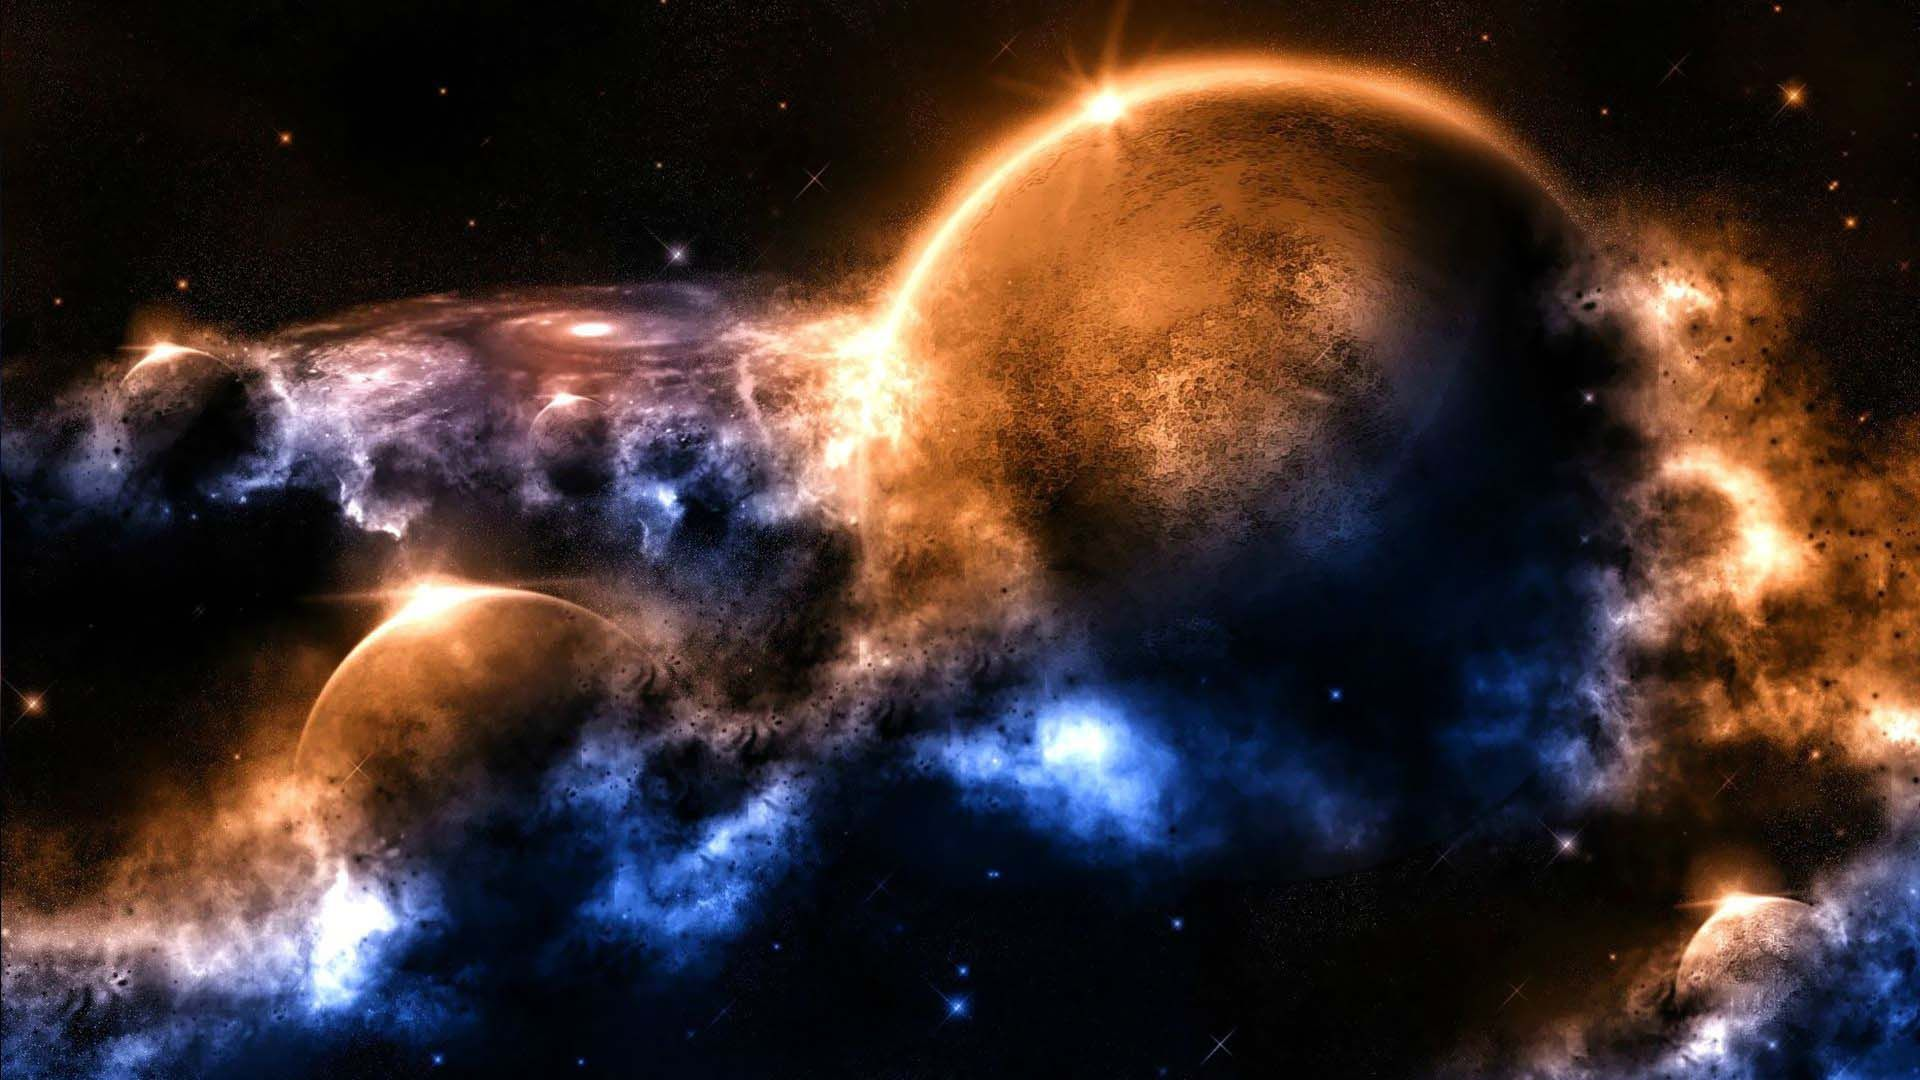 Outer Space 4k ultra hd backgrounds wallpaper - HD Wallpapers